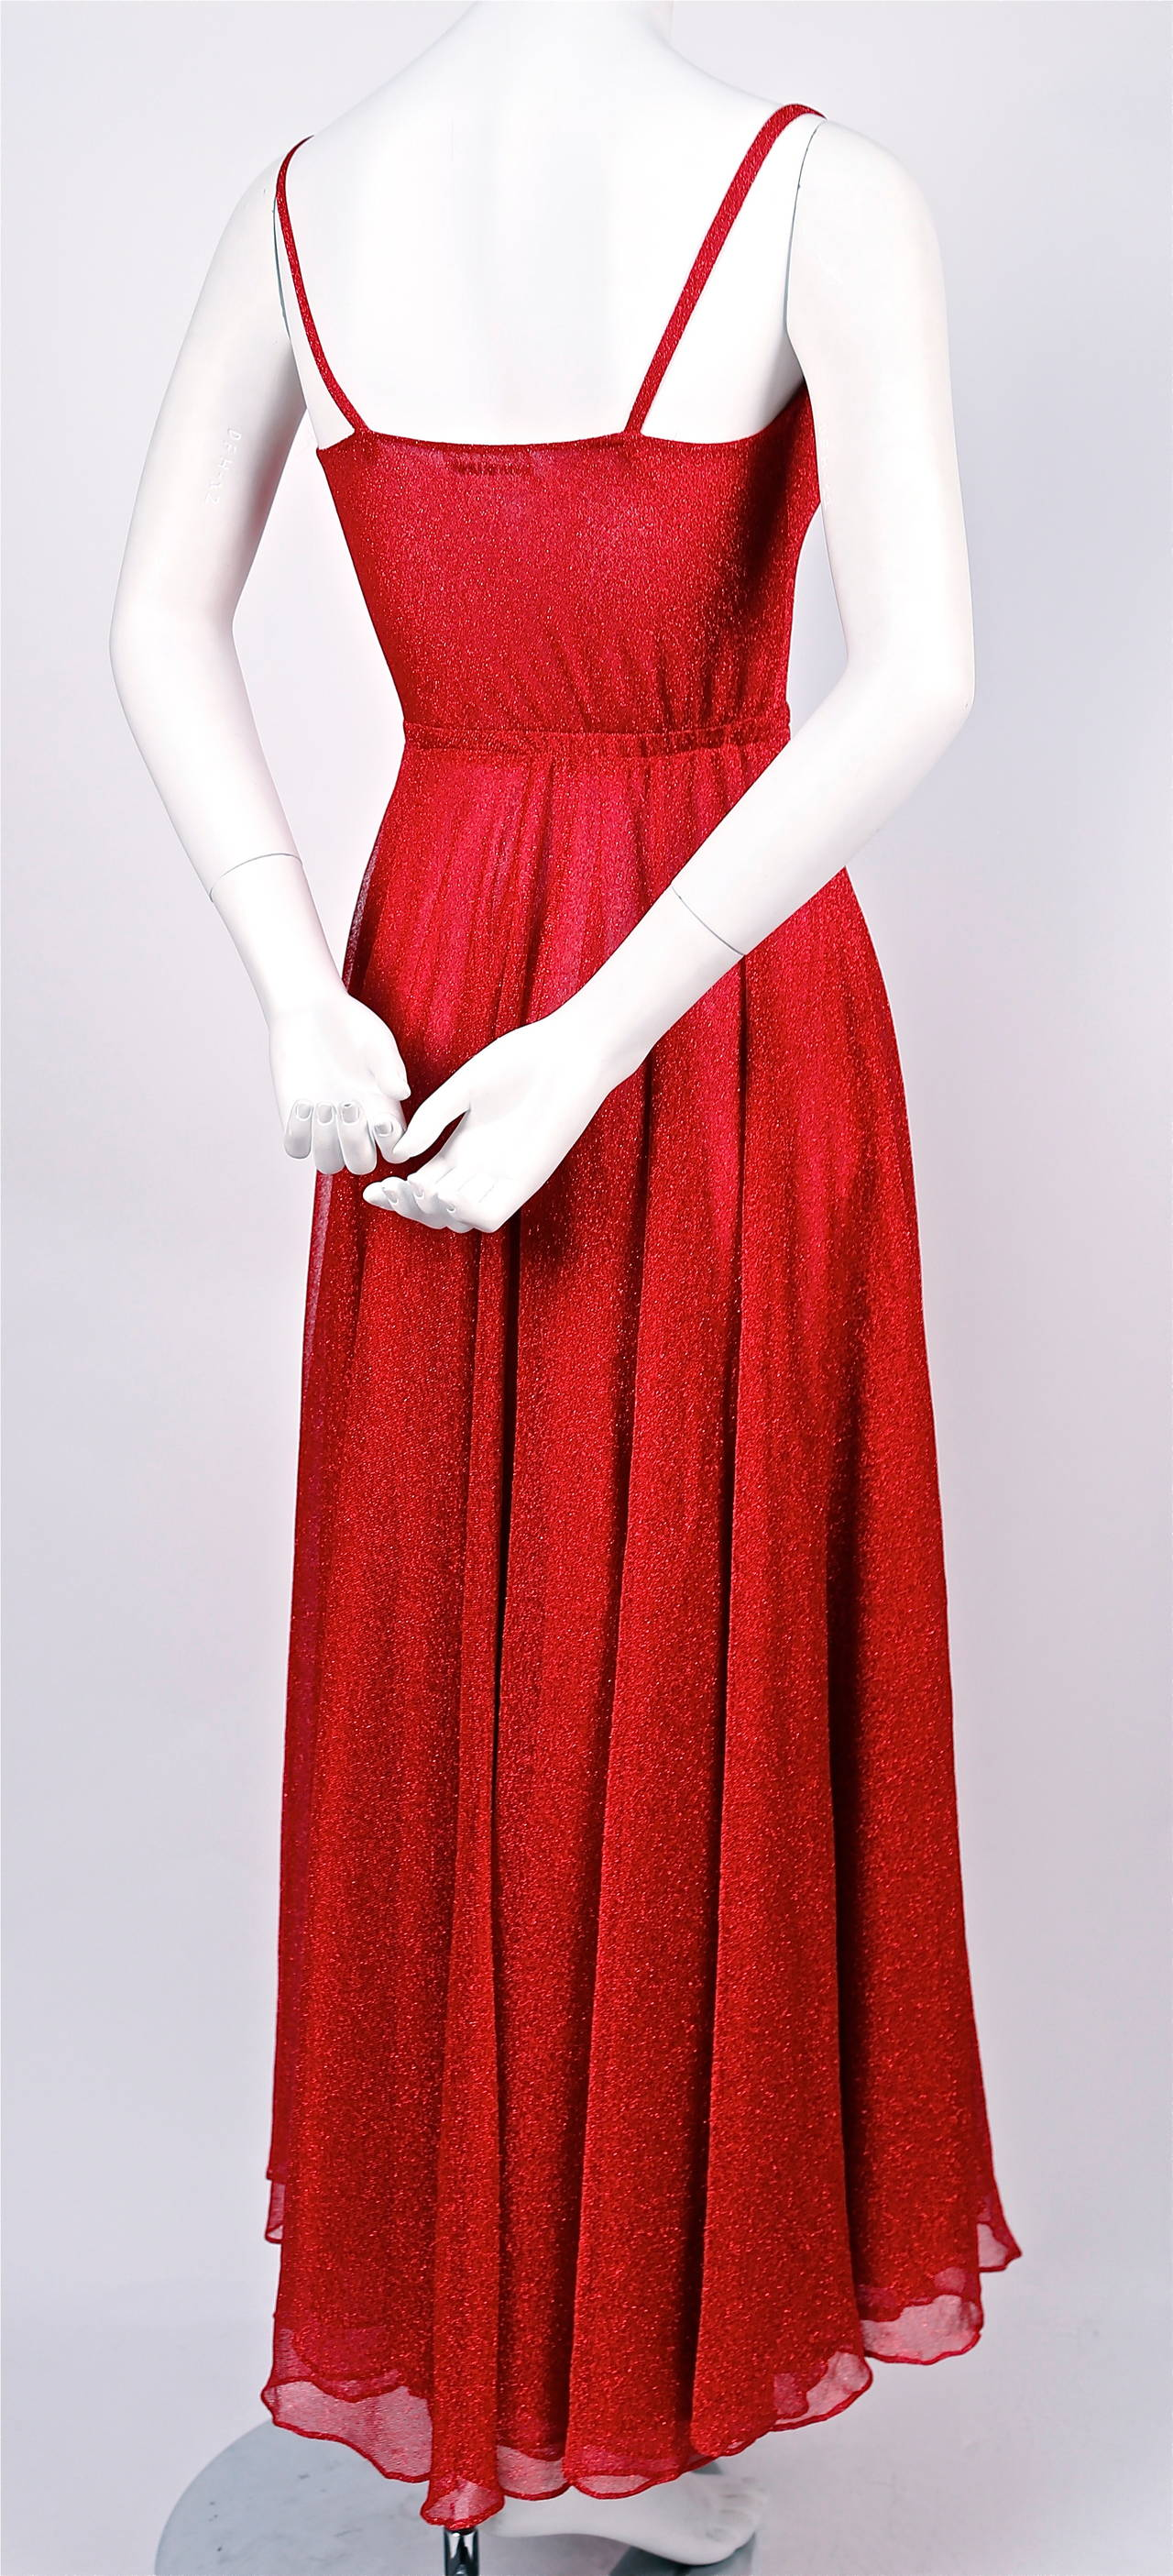 Halston fuchsia lurex dress, 1970s  In Excellent Condition For Sale In San Fransisco, CA